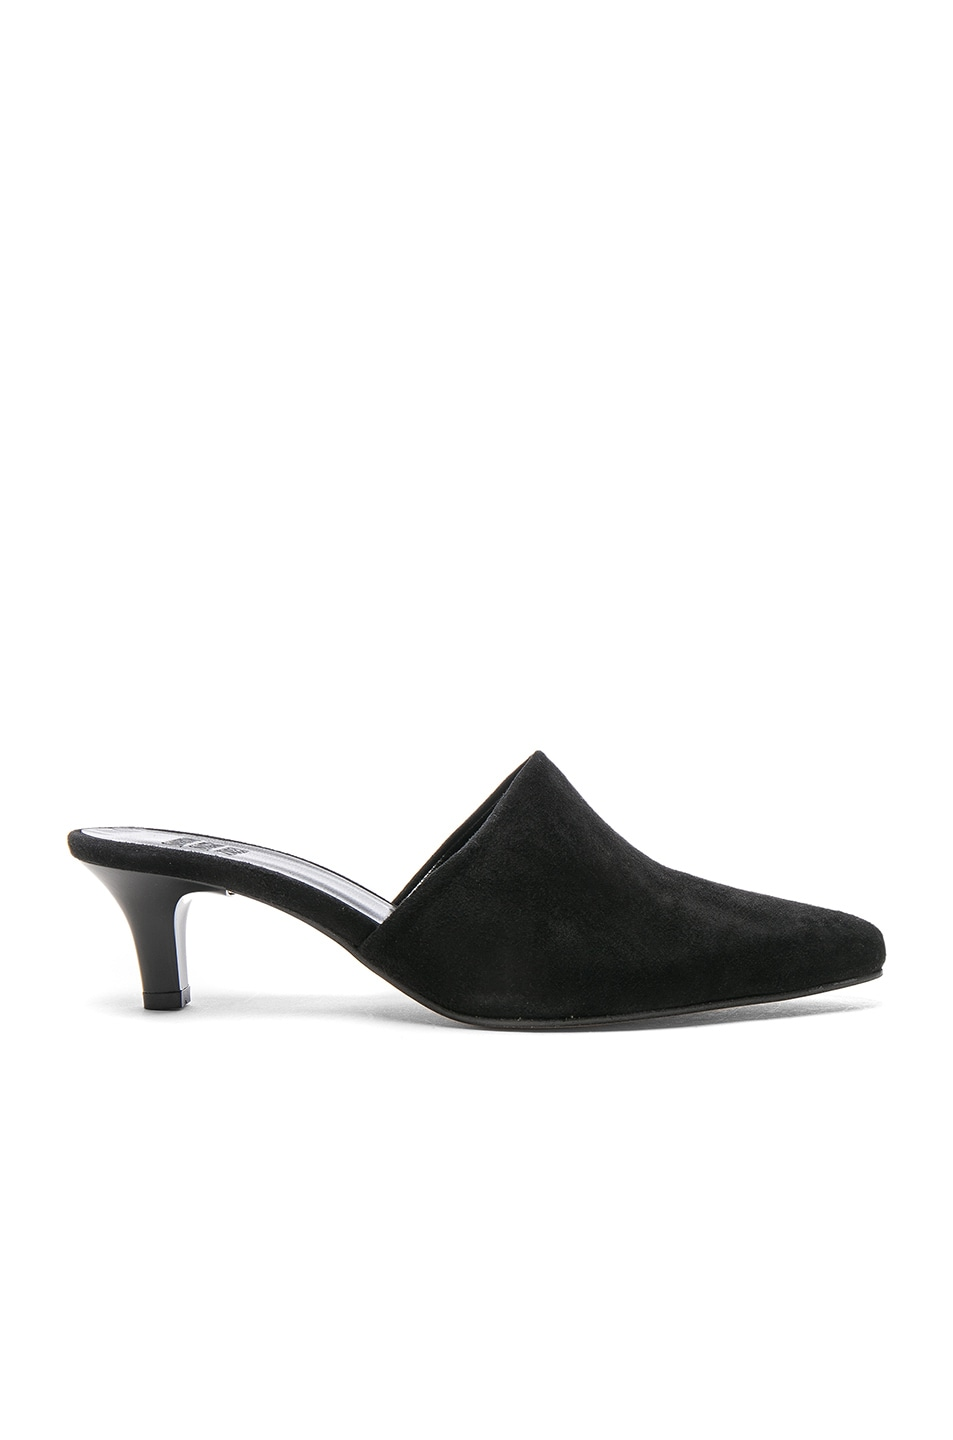 Image 1 of Maryam Nassir Zadeh Suede Andrea Mules in Black Suede